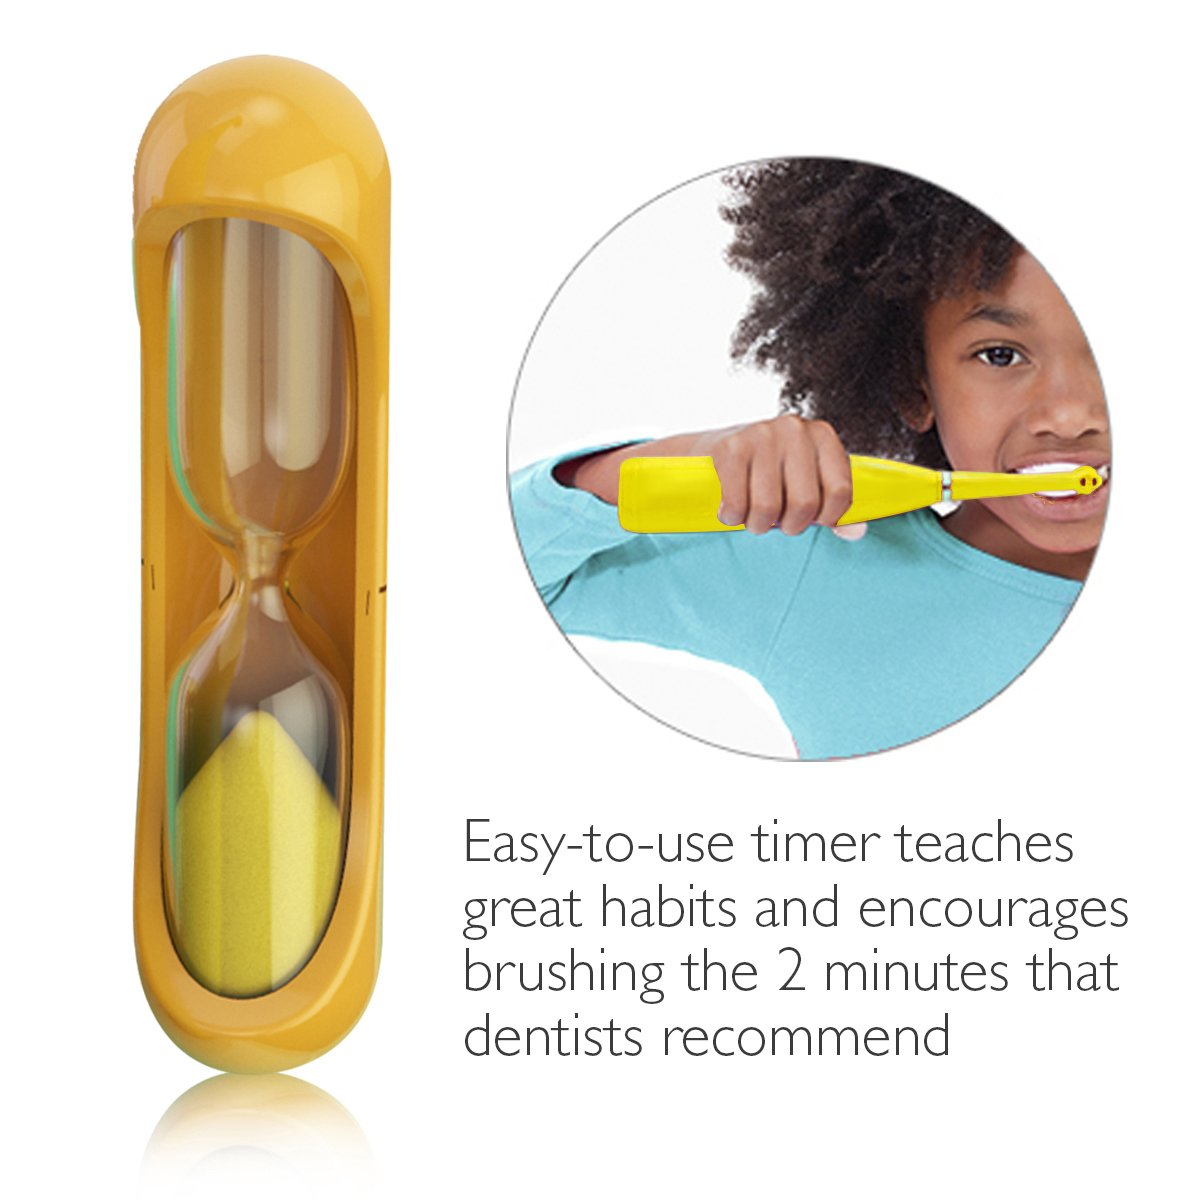 Brusheez Children's Electronic Toothbrush Set – Includes Battery-Powered Toothbrush, 2 Brush Heads, Cute Animal Head Cover, 2-Minute Sand Timer, Rinse Cup, and Storage Base - Jovie the Giraffe by Brusheez (Image #4)